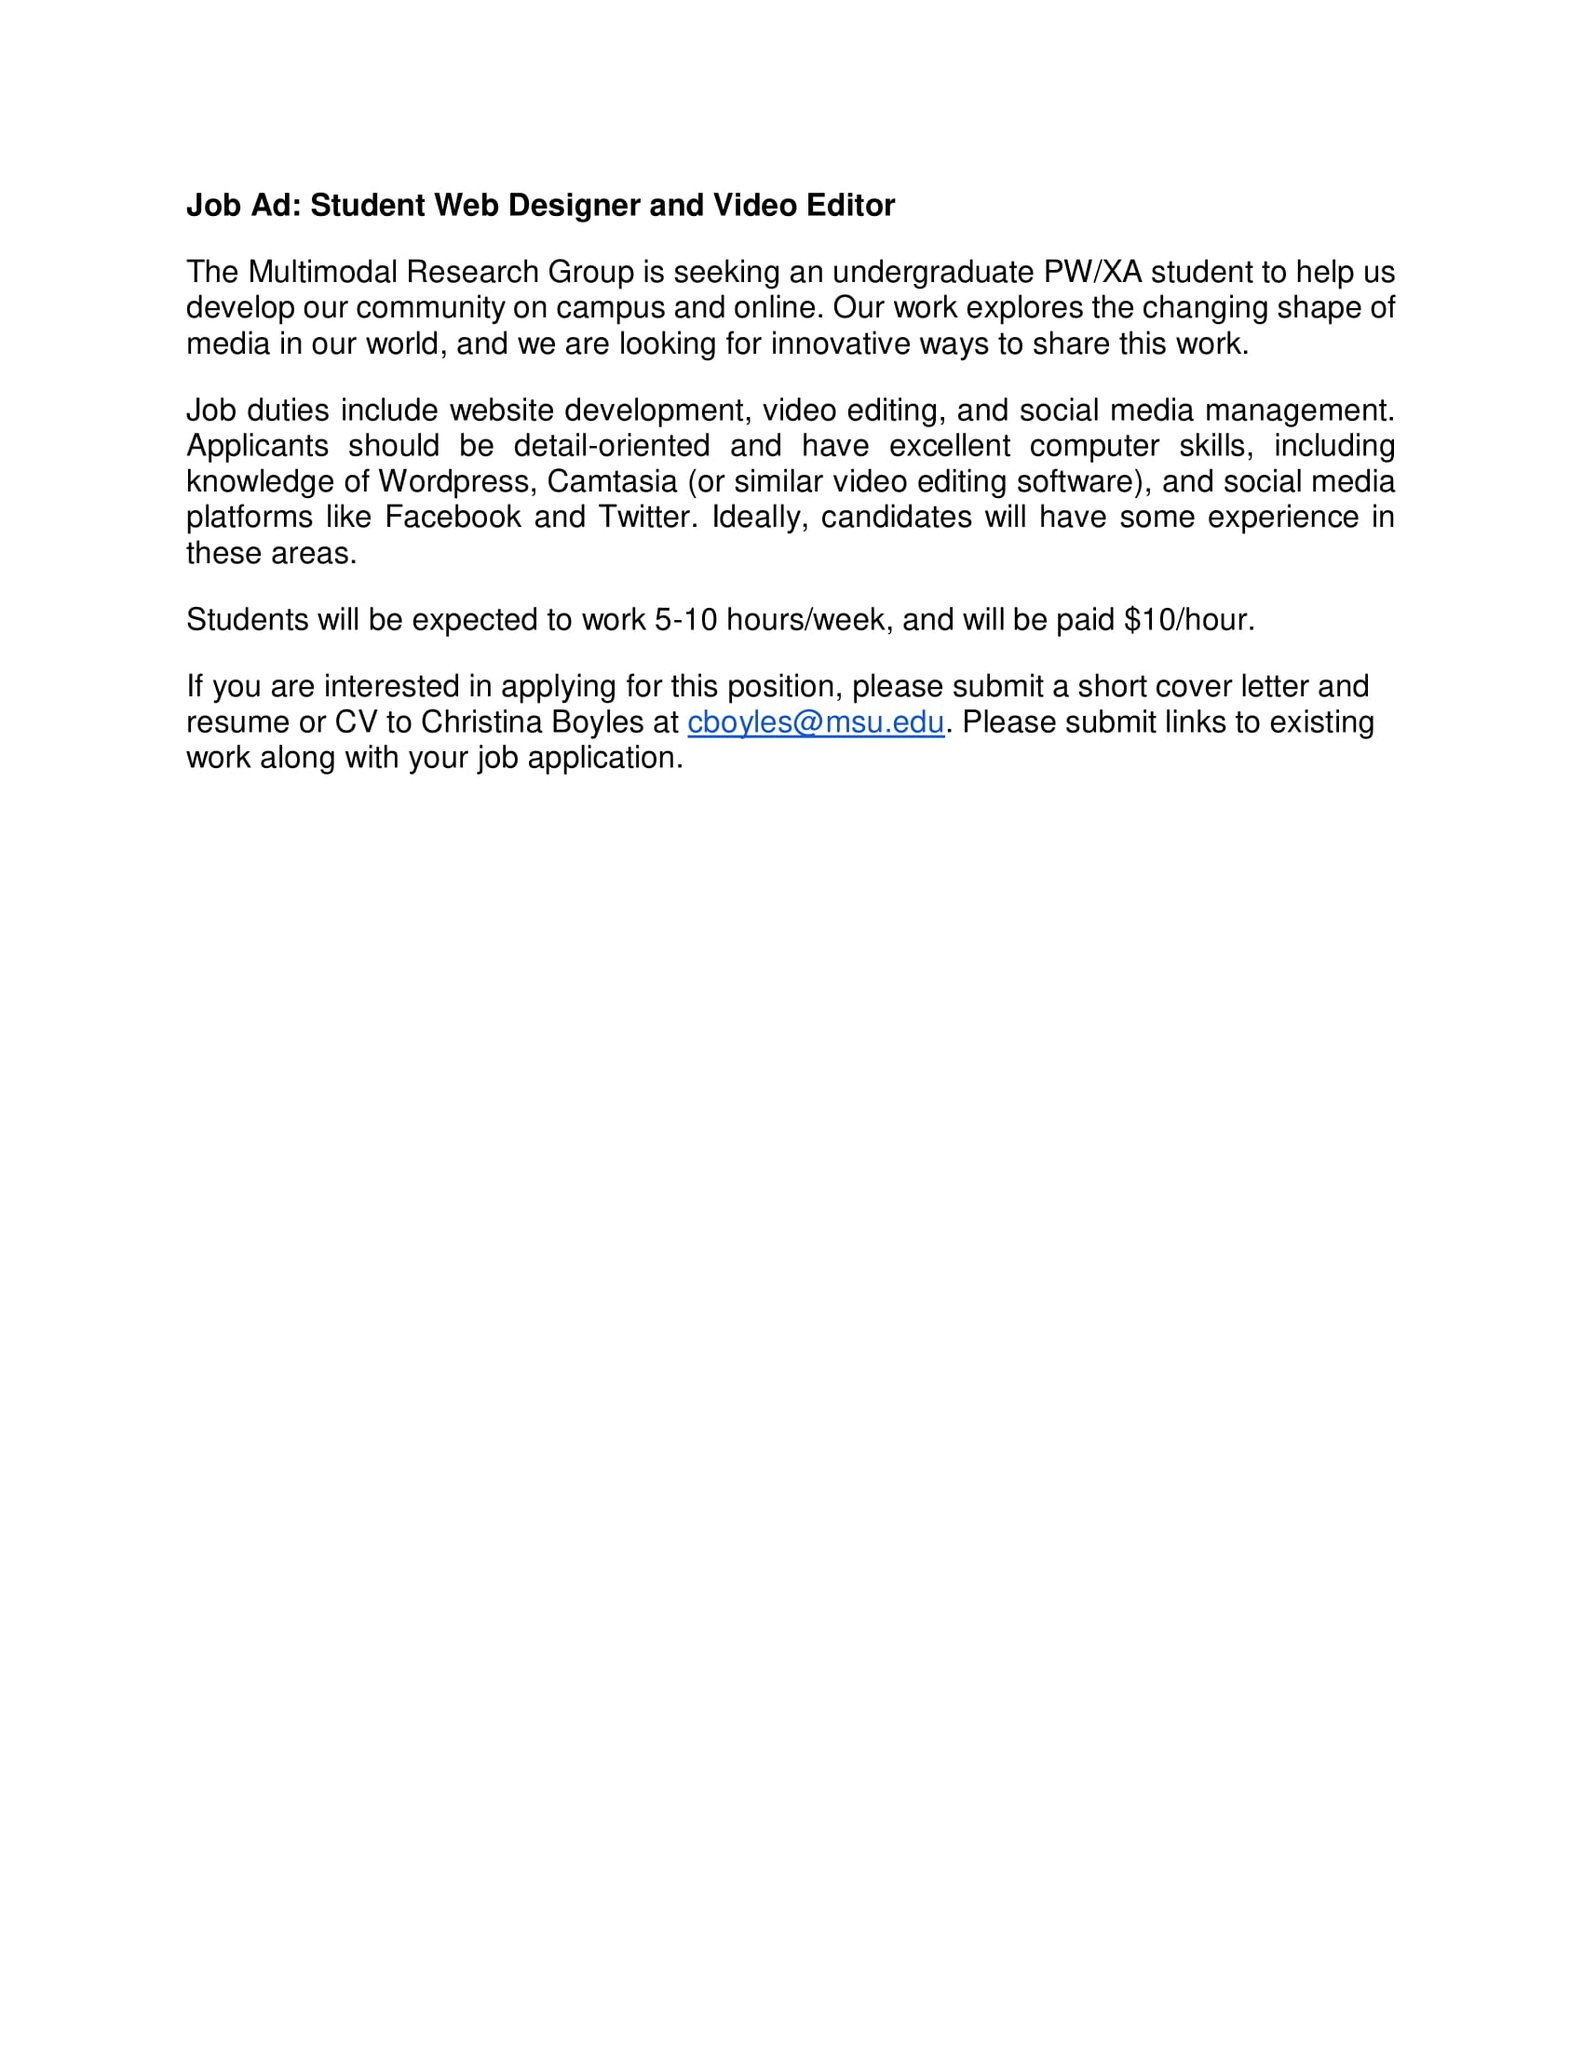 Wrac Msu On Twitter Pw Xaers The Multimodal Research Group Is Seeking An Undergraduate Student To Help Them Develop Their Community On Campus And Online If You Are Interested Please Submit A